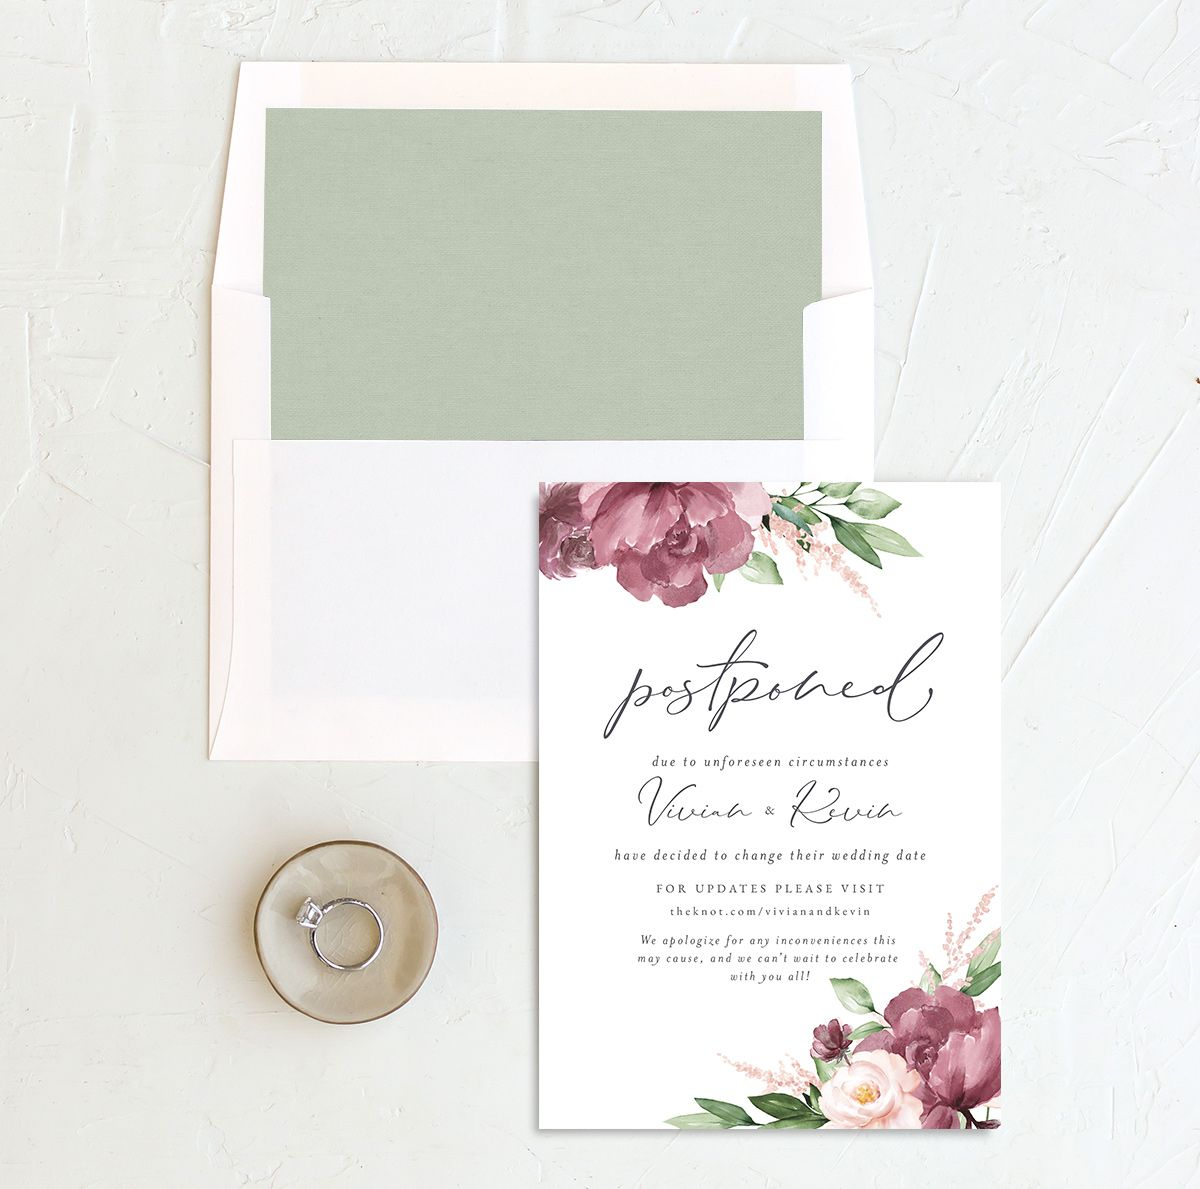 Beloved Floral Change the Date Card with DIY liner in pink